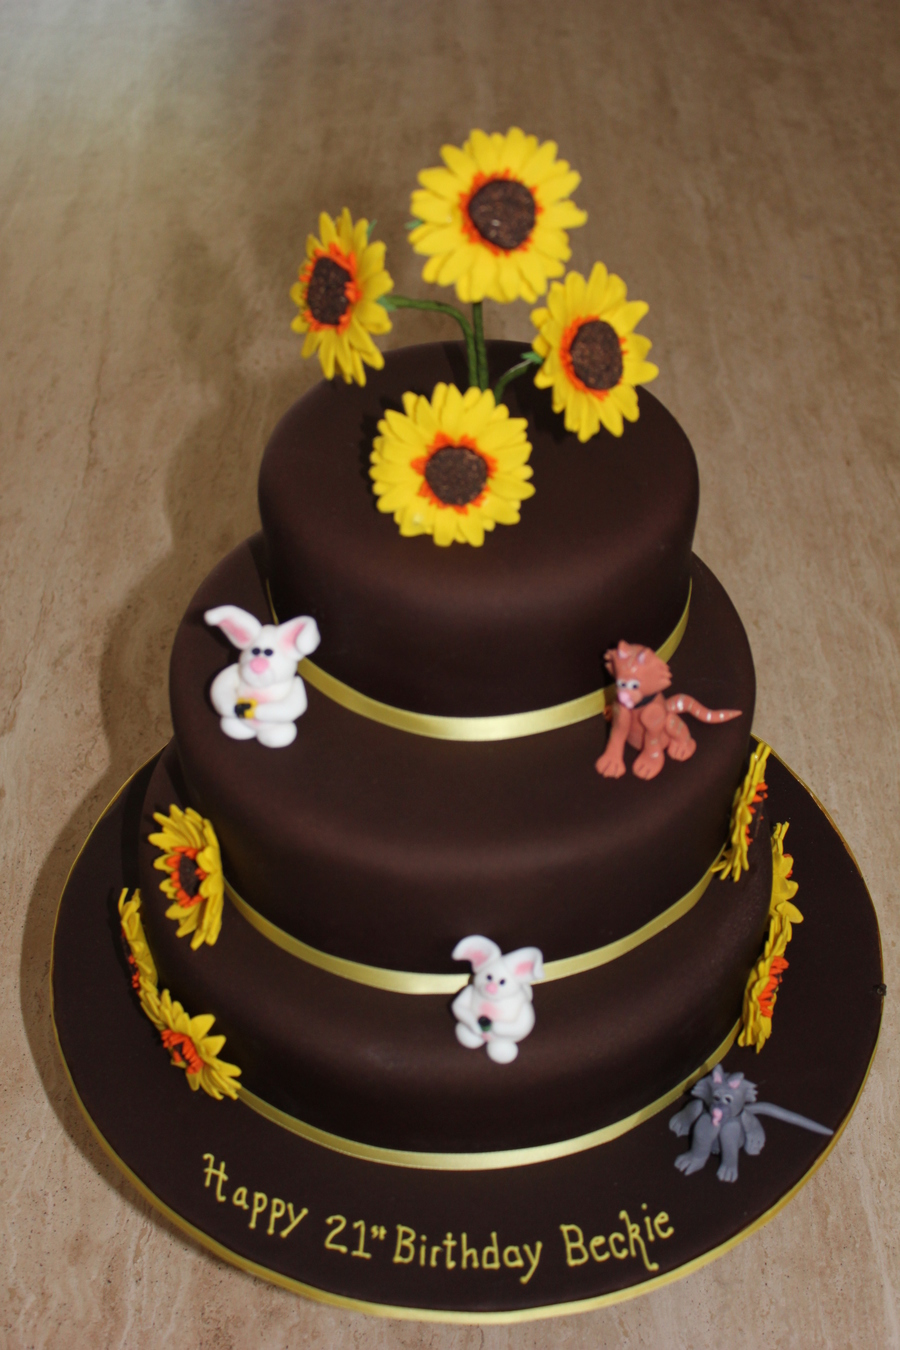 Sunflowers Cats And Rabbits 3 Tier Chocolate Cake